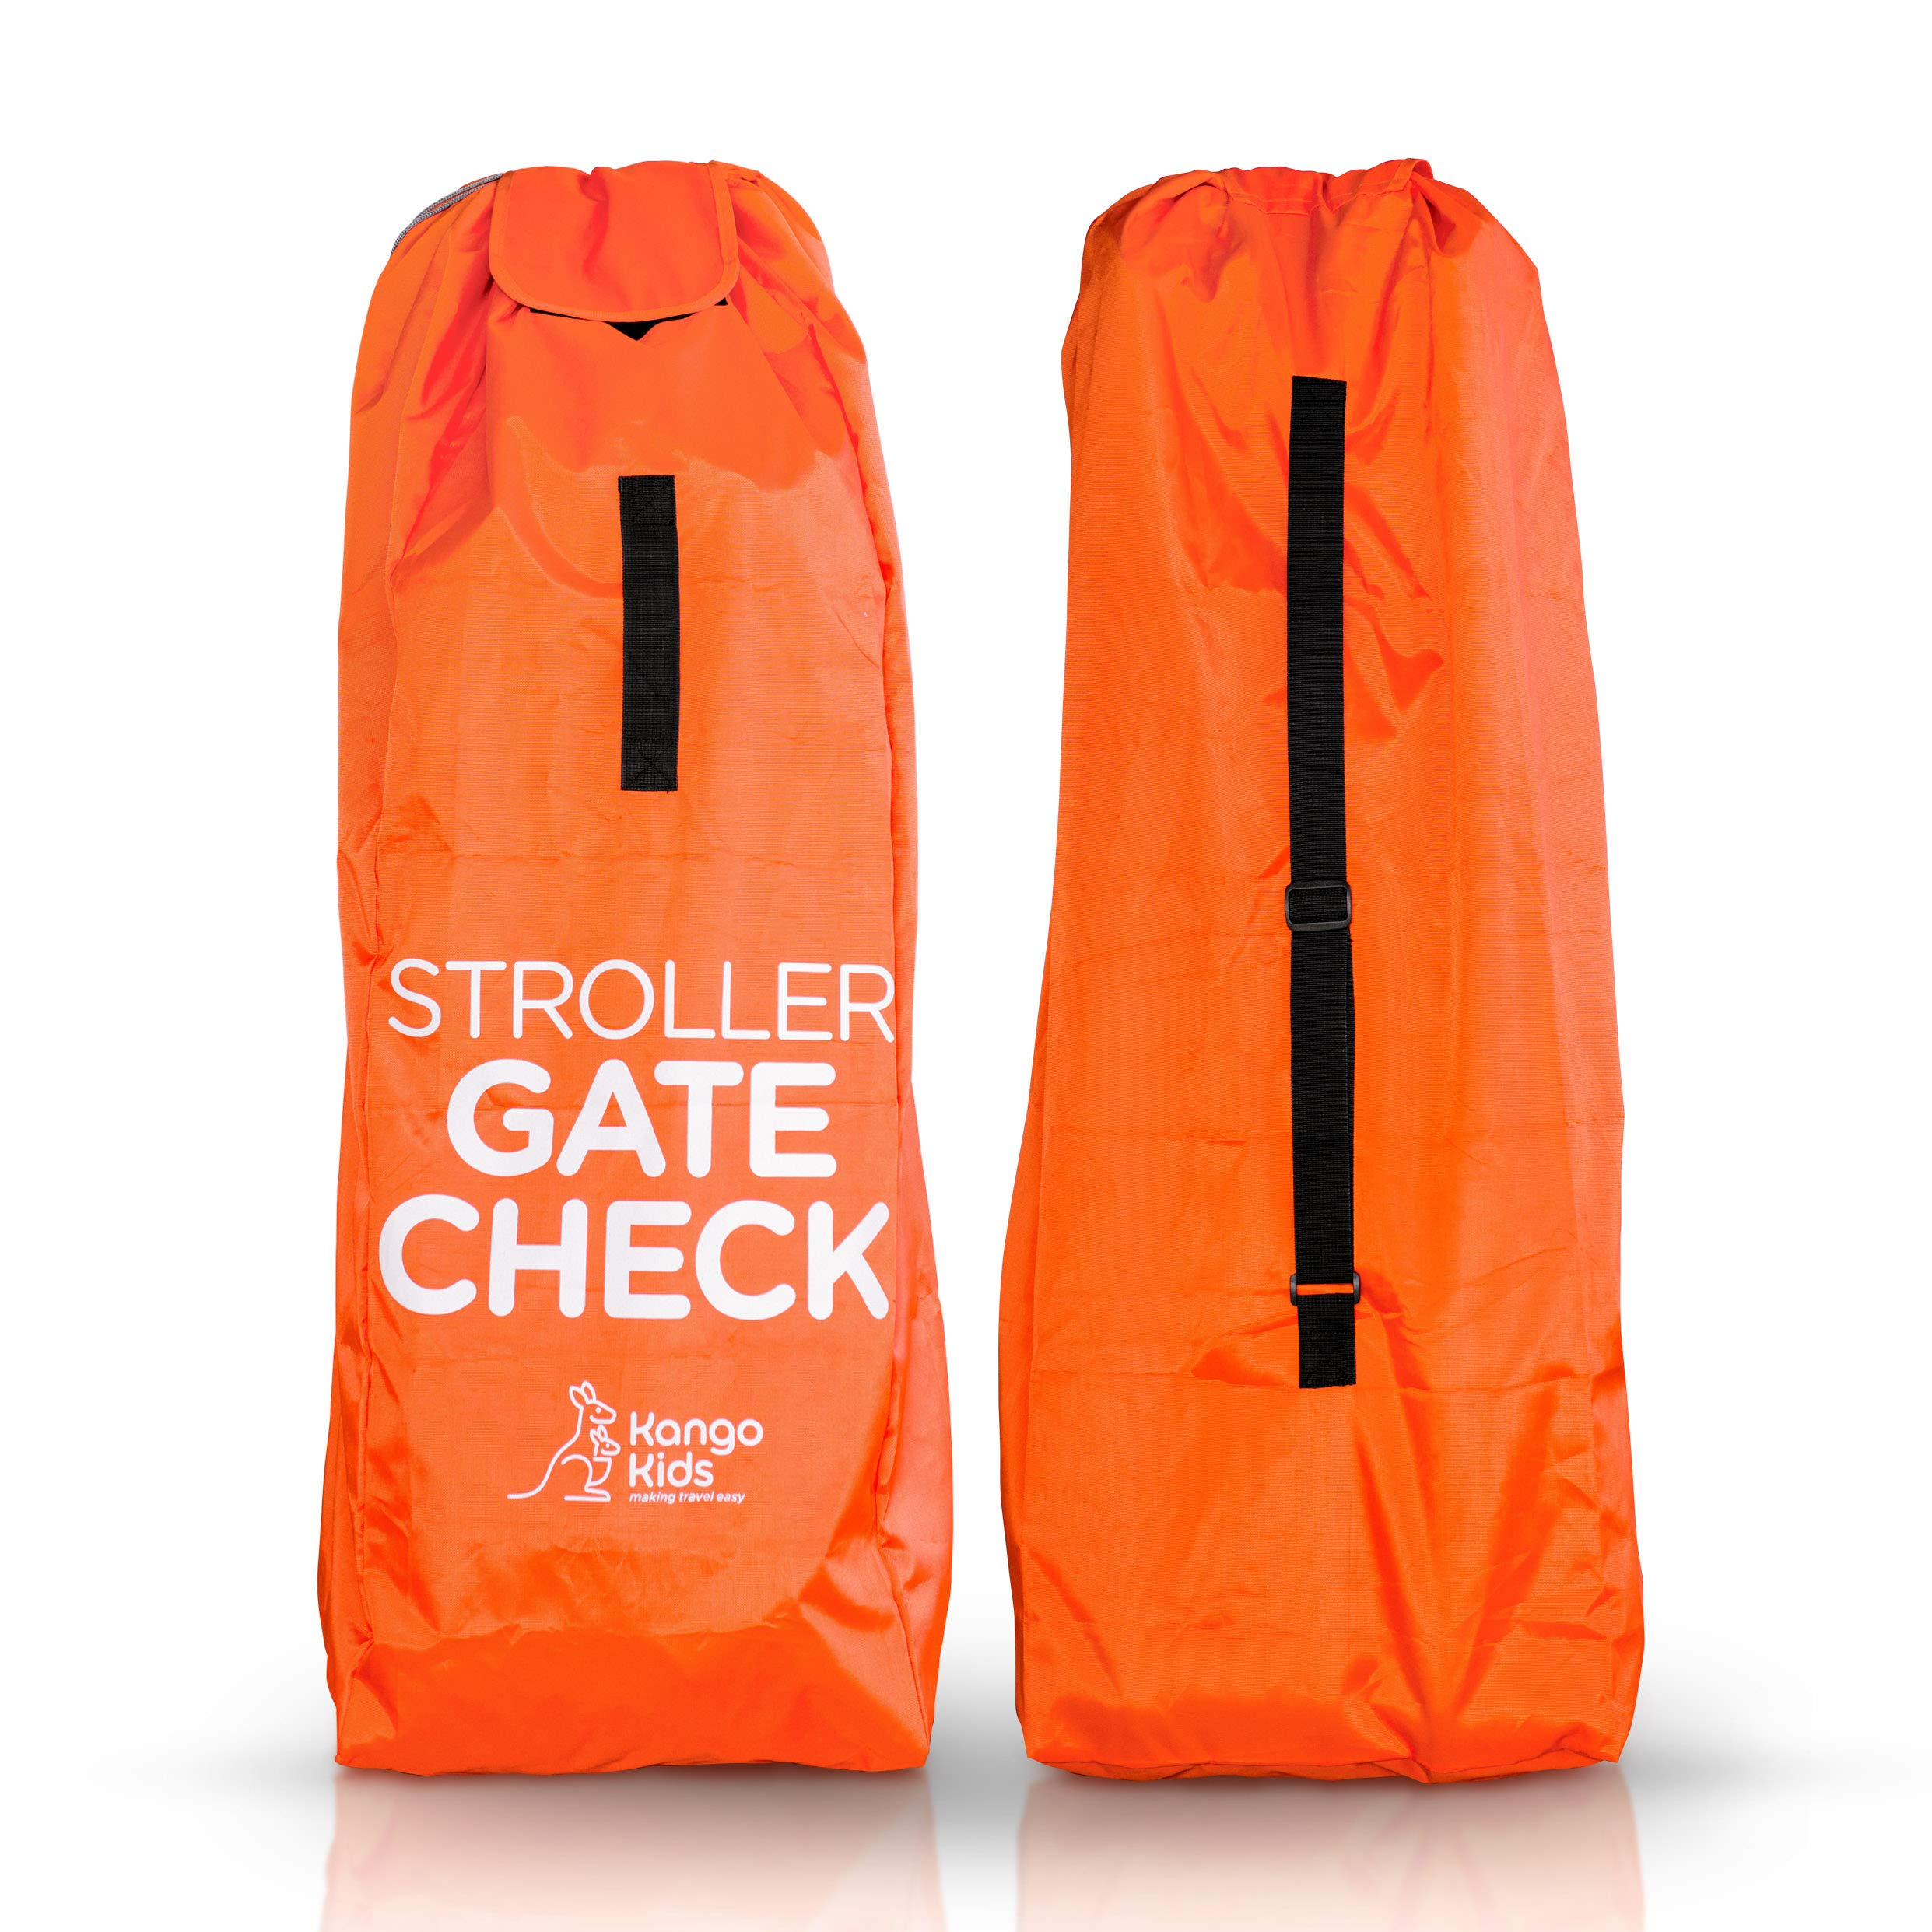 Stroller Travel Bag -Make Travel Easier & Save Money. Baby Gate Check Bags for Air Travel - Protect your Child's Umbrella Strollers from Germs & Damage. Durable, Waterproof and Easy to Carry. Kango